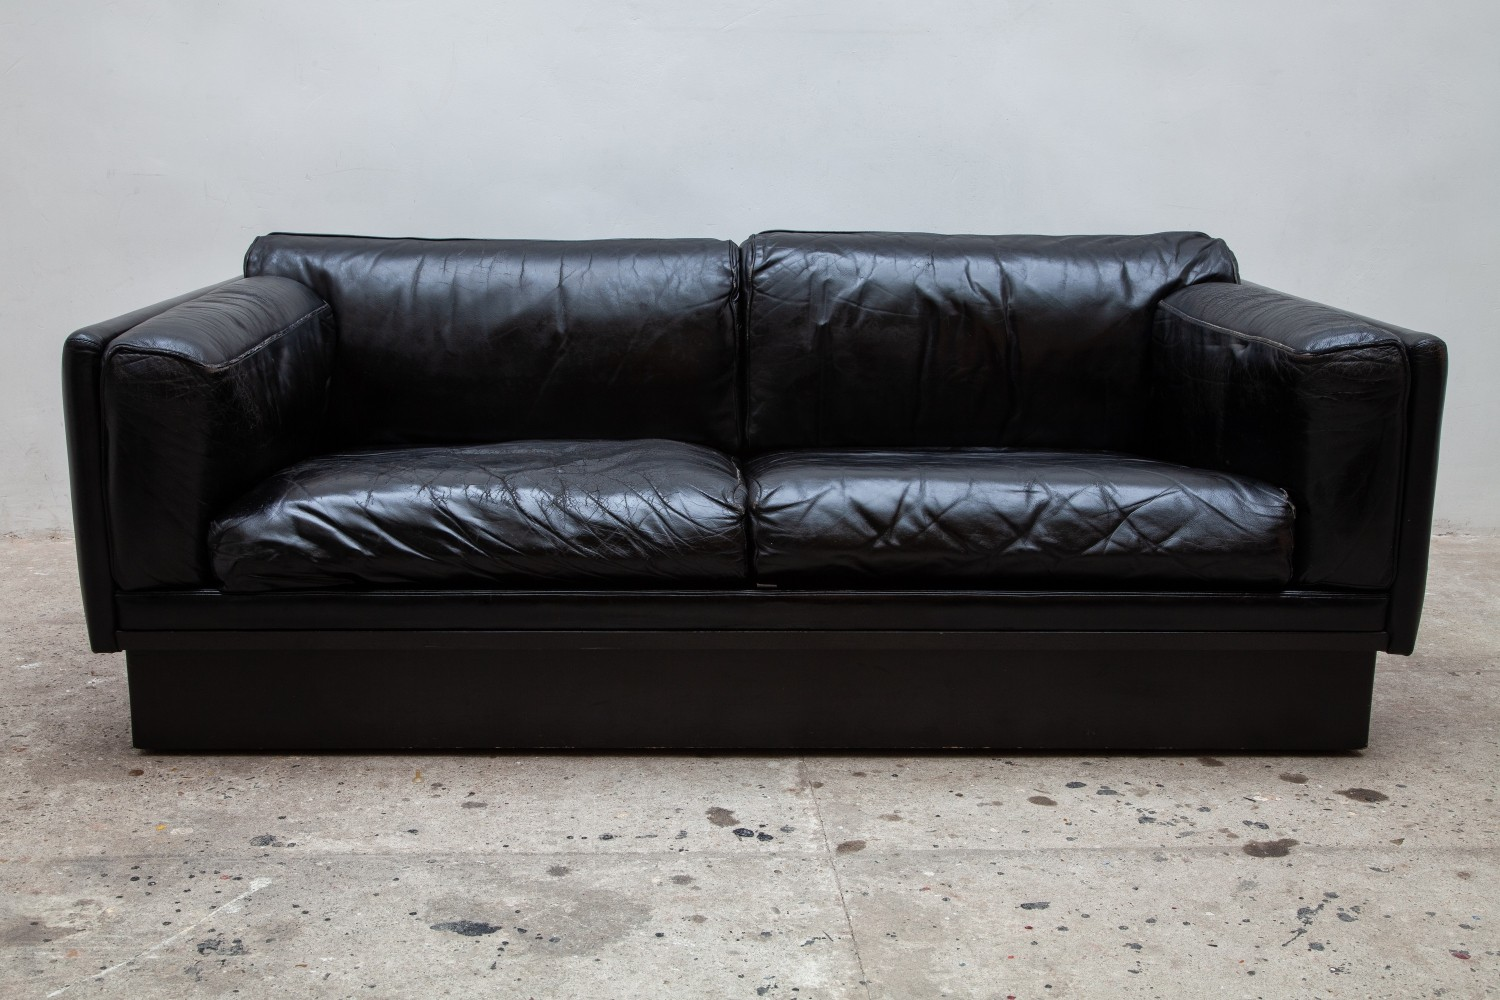 Set of two Black Leather sofa